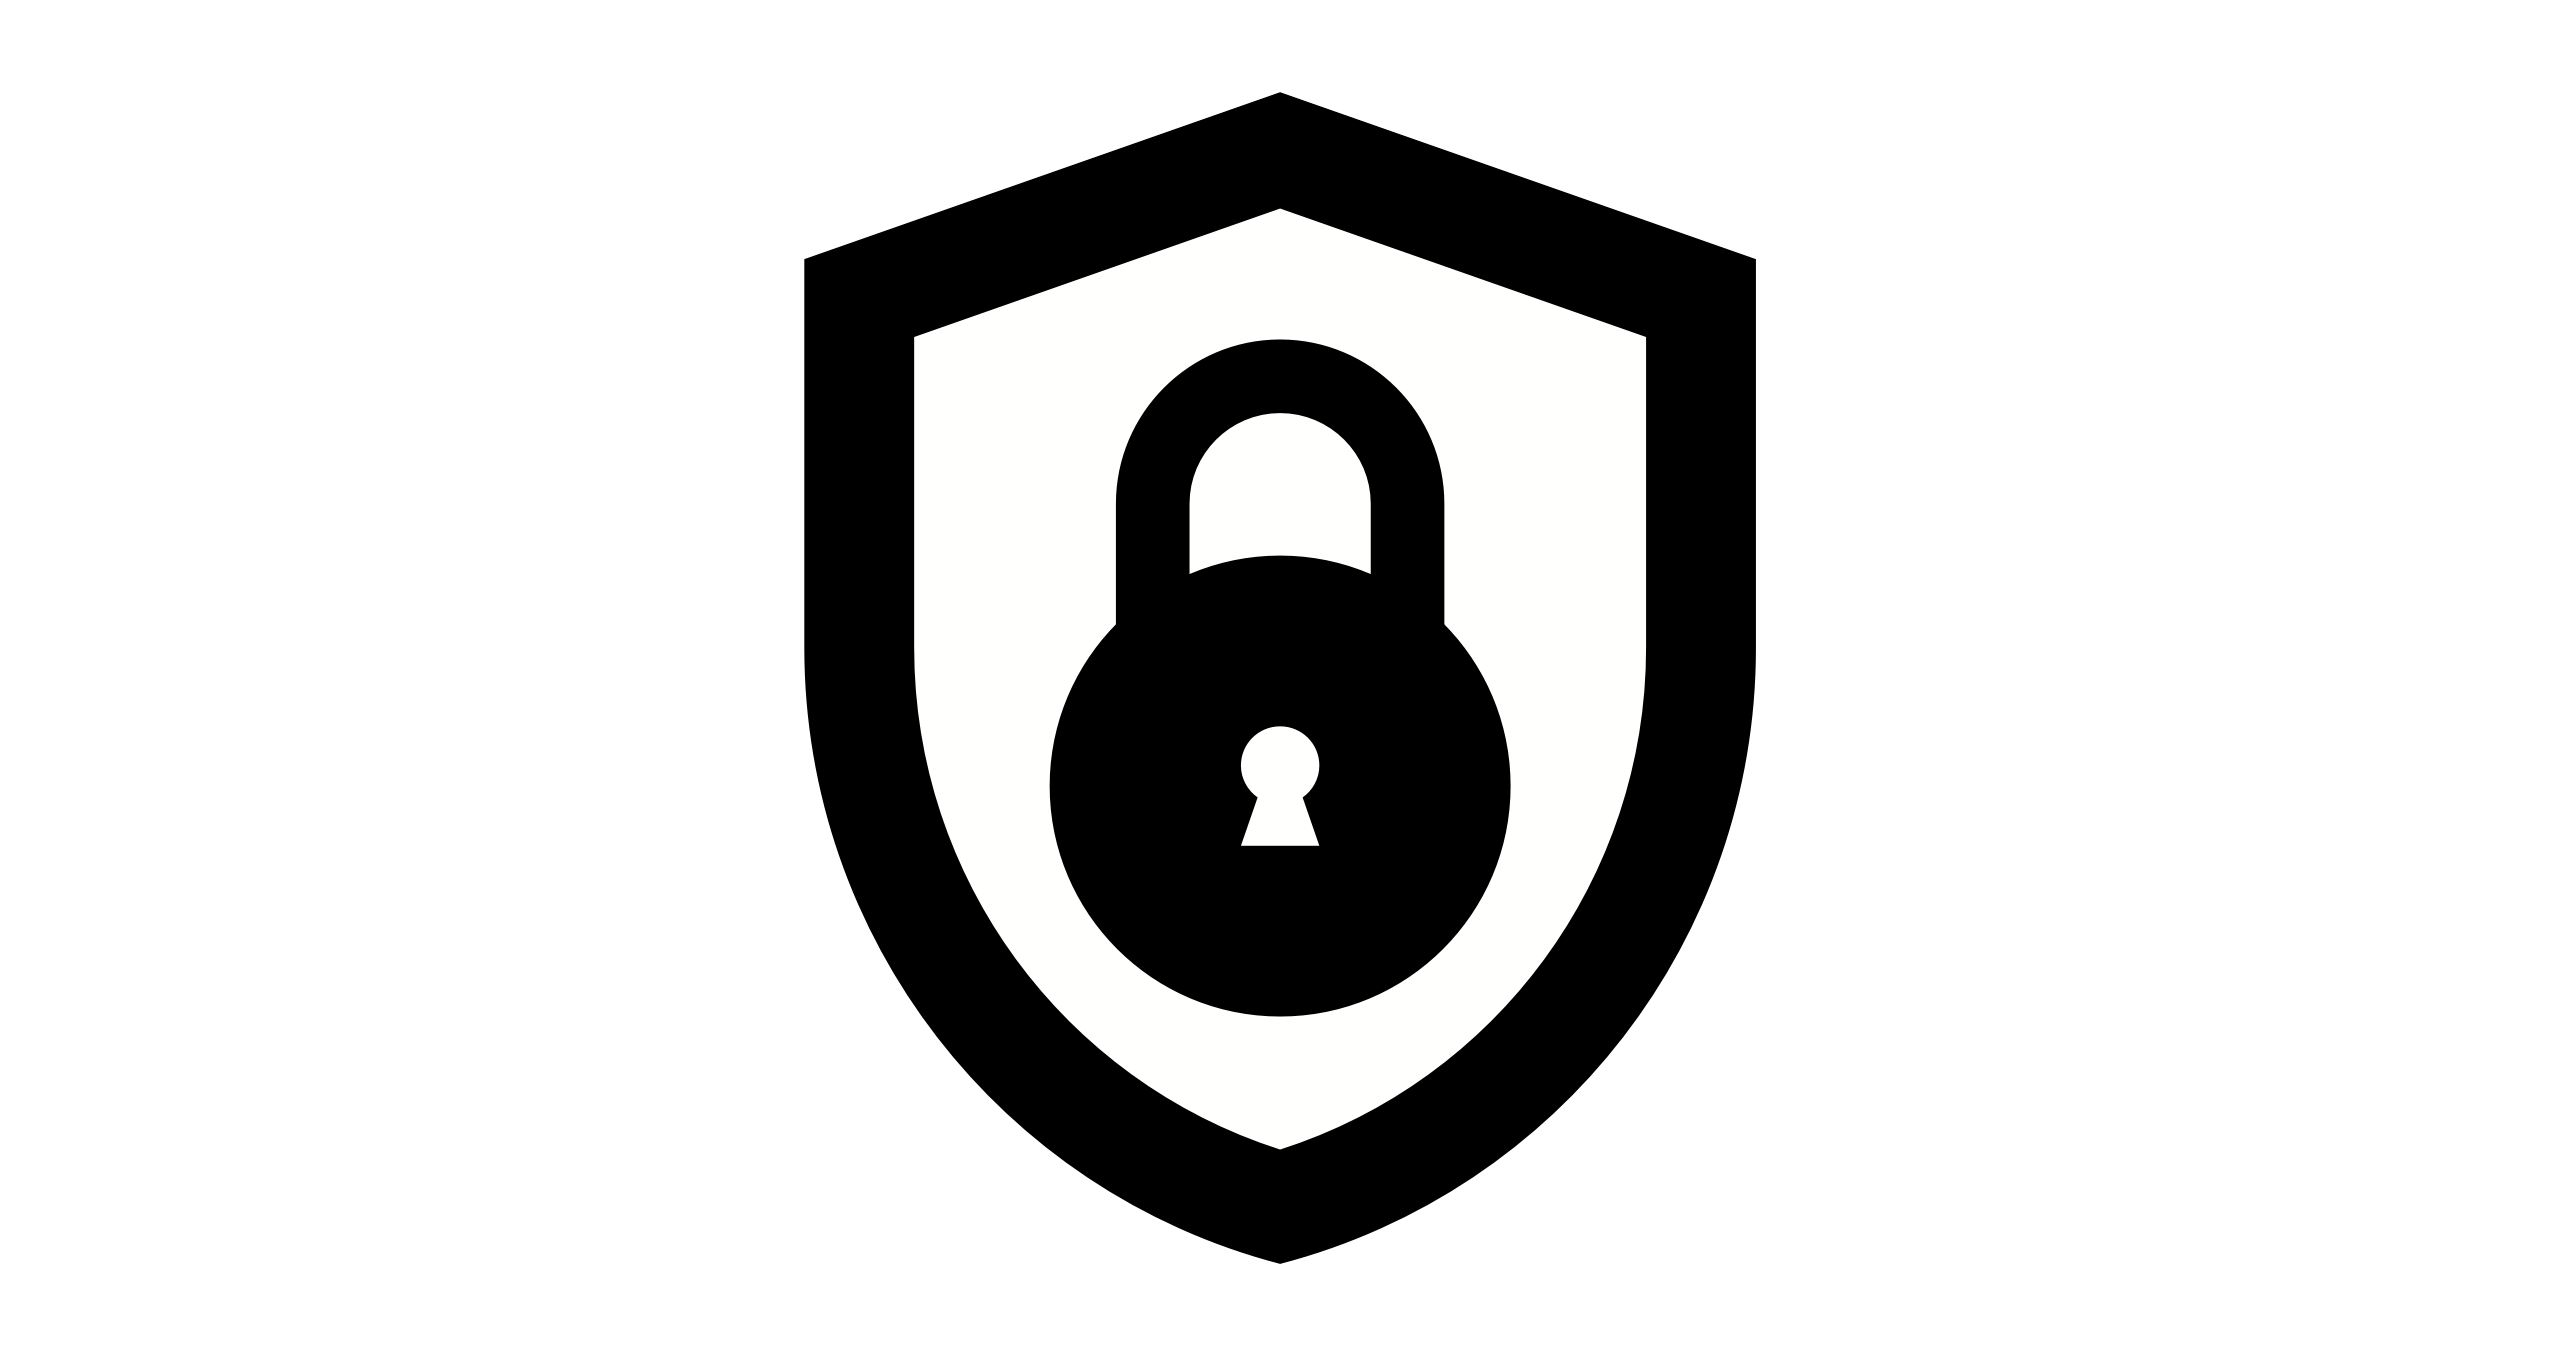 Lock clipart internet security.  collection of cyber